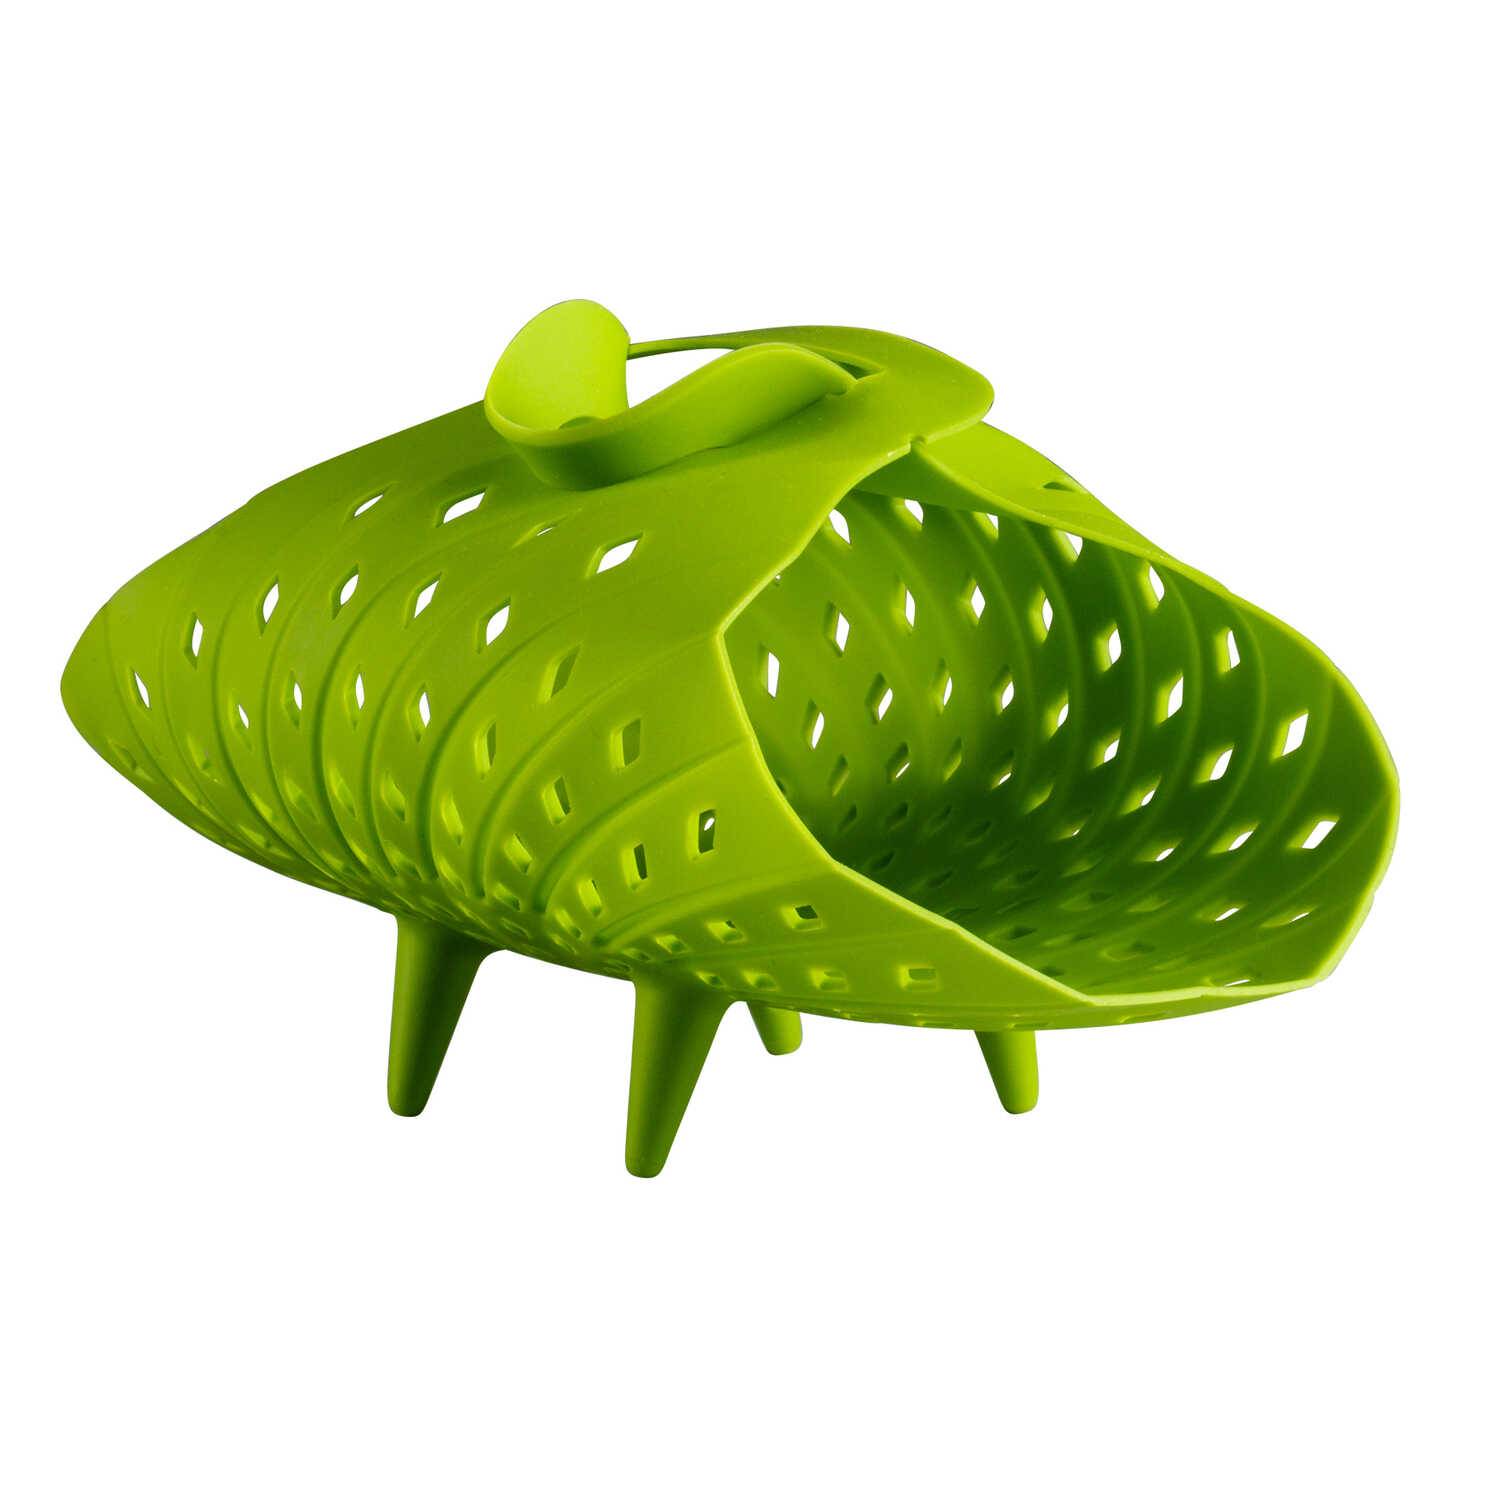 Chef'n  Veggisteam  5-5/16 in. W x 10 in. L Green  Vegetable Steamer